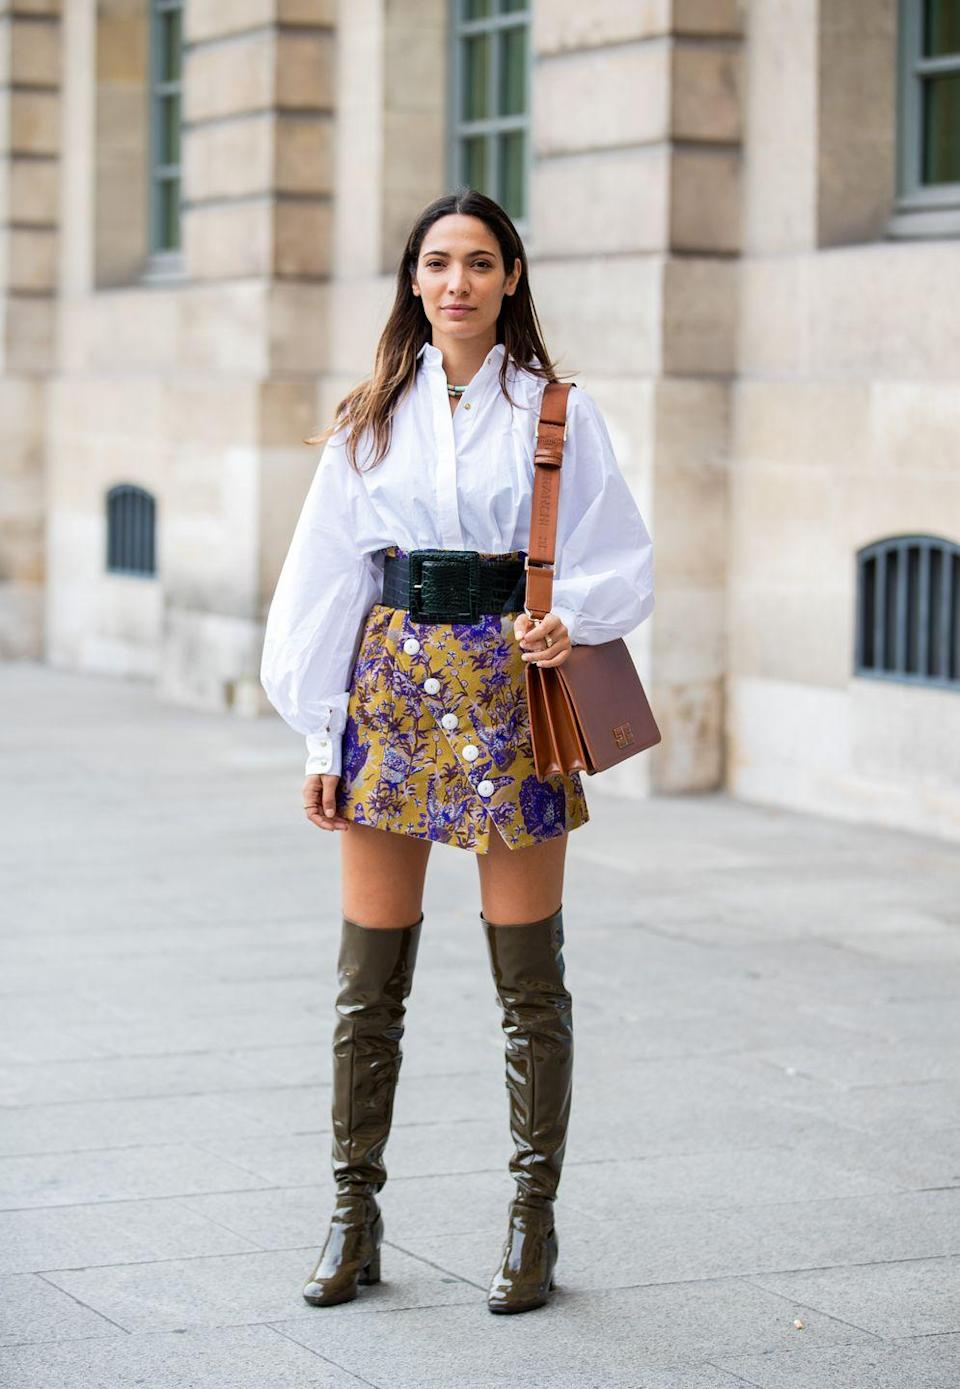 <p>Ditch a black pair in favor of patent leather olive-green ones, and be creative with your color combinations. This skirt, top, belt, and bag situation features so many other hues, but they all go together so perfectly. </p>